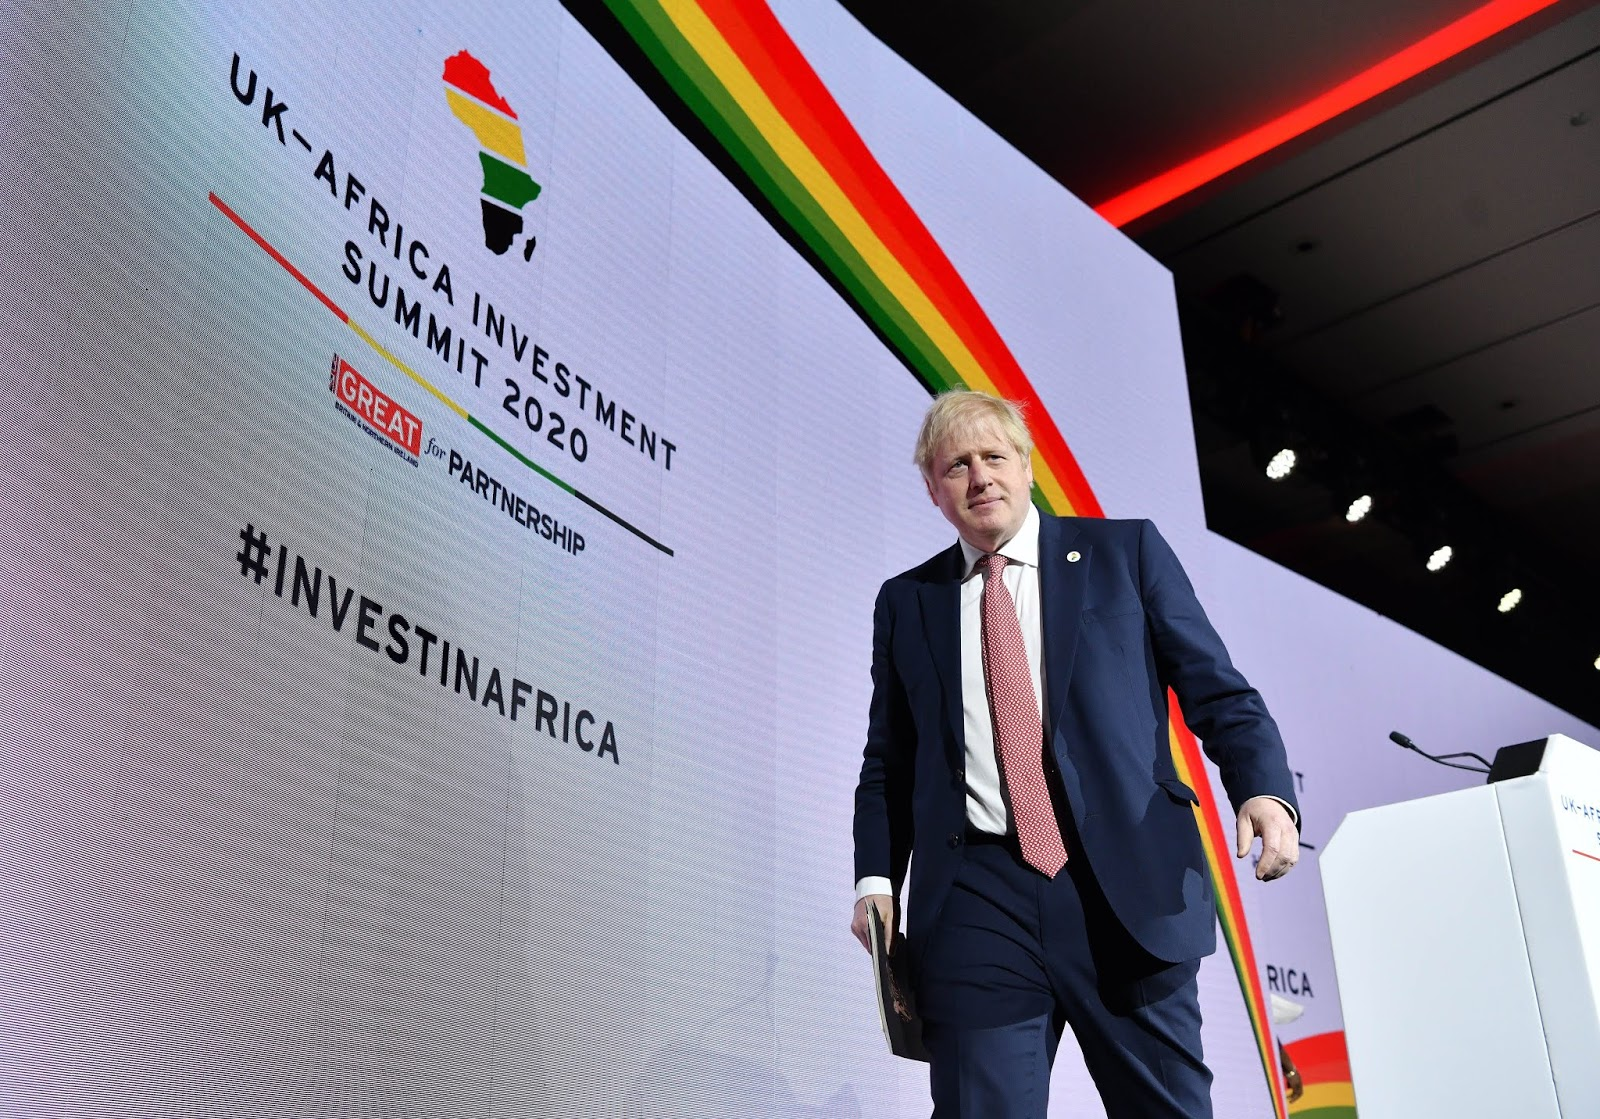 uk-africa investment summit will take place in january 2020,uk africa investment summit 20 january 2020,uk africa investment summit january 2020,uk africa investment summit january 2020 registration,uk africa investment summit january 2020,uk-africa investment summit 2020 tickets,uk africa investment summit 2020 registration,uk africa investment summit 2020,uk-africa investment summit in 2020